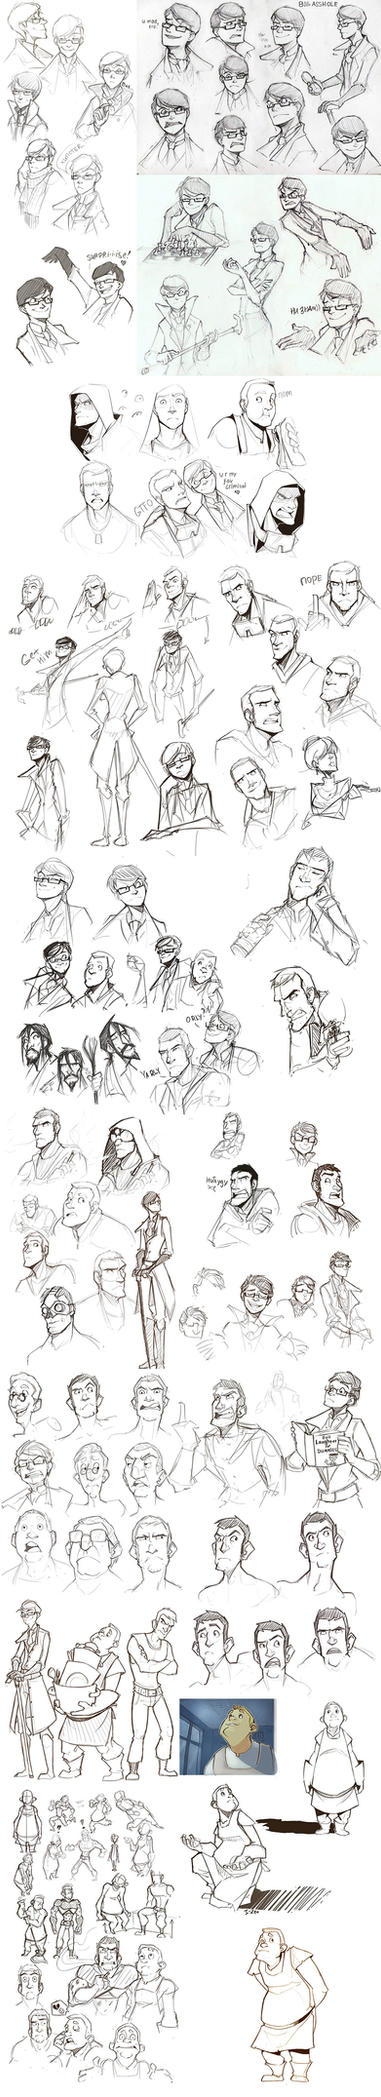 old sketches by I-Zet